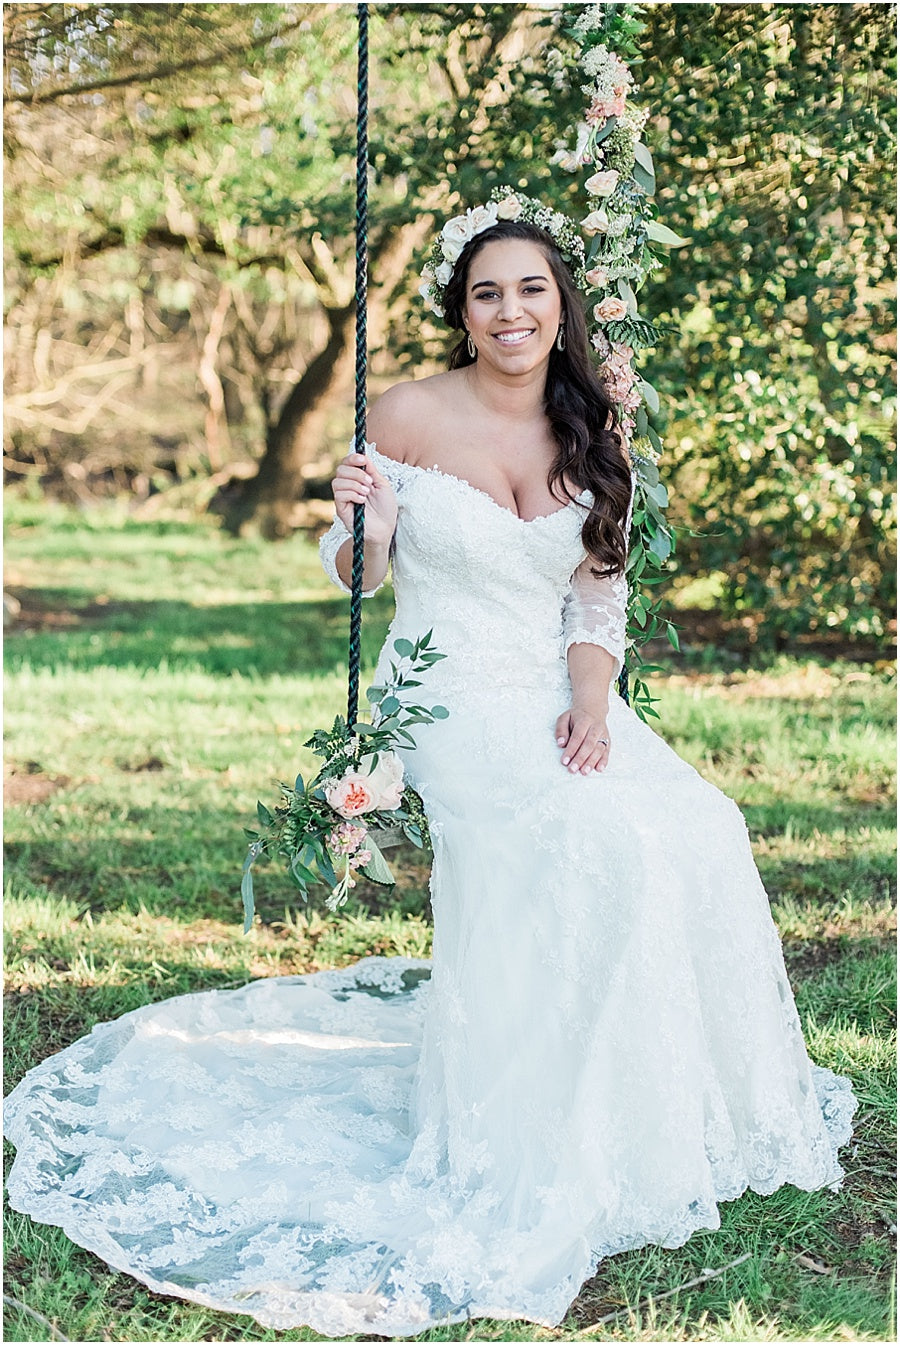 leah adkins photography // little miss lovely floral design // bride on swing decorated with flowers